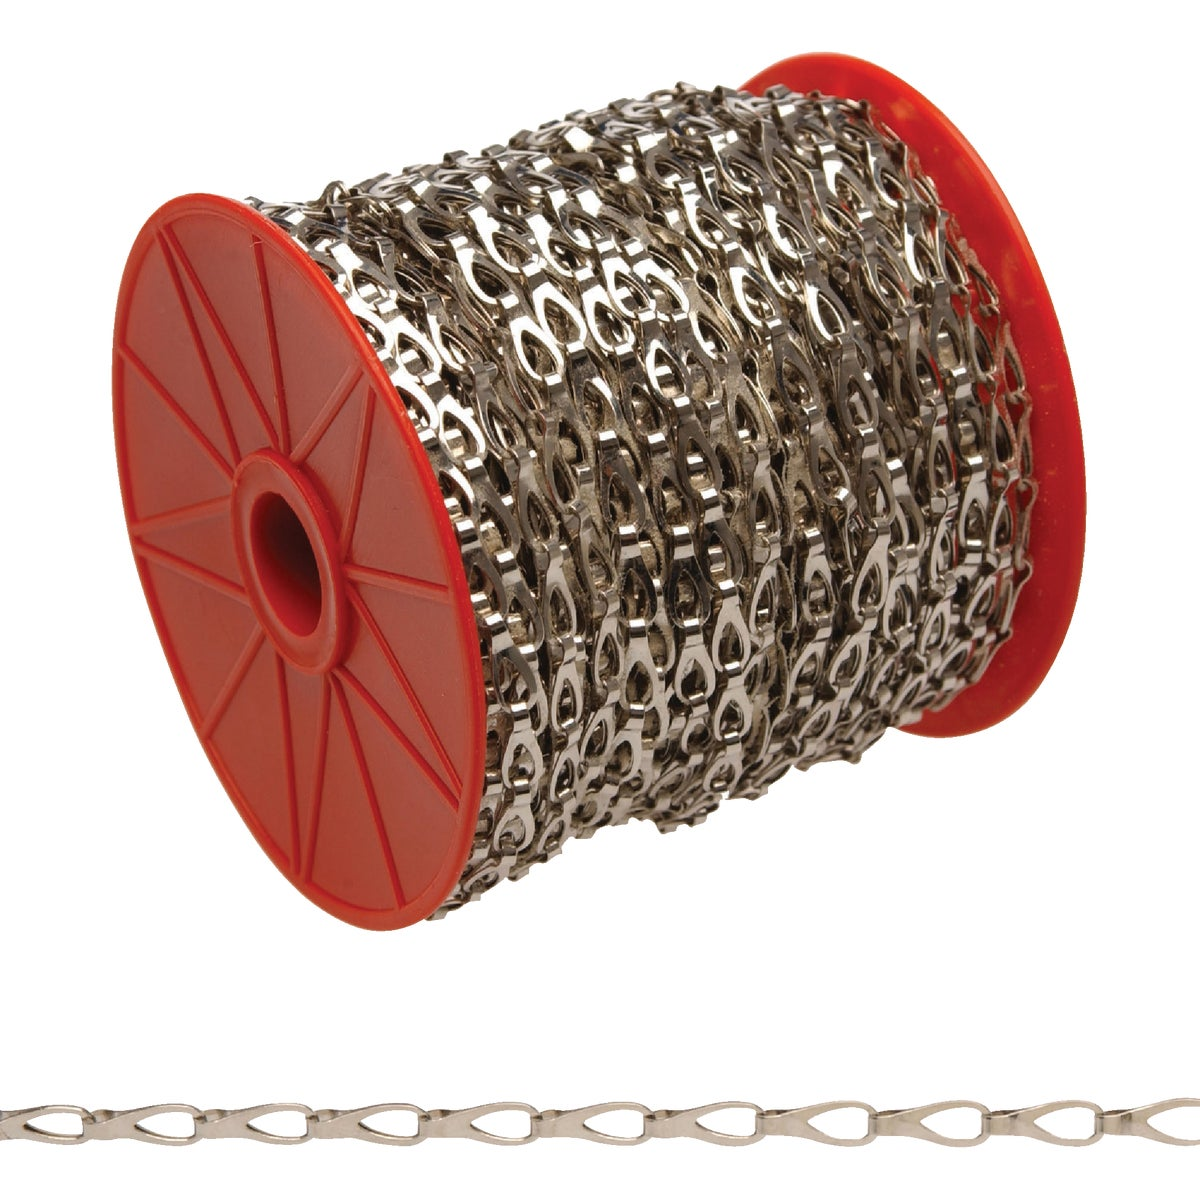 164'#2 CHROME SASH CHAIN - 0710227 by Cooper Campbell Apex